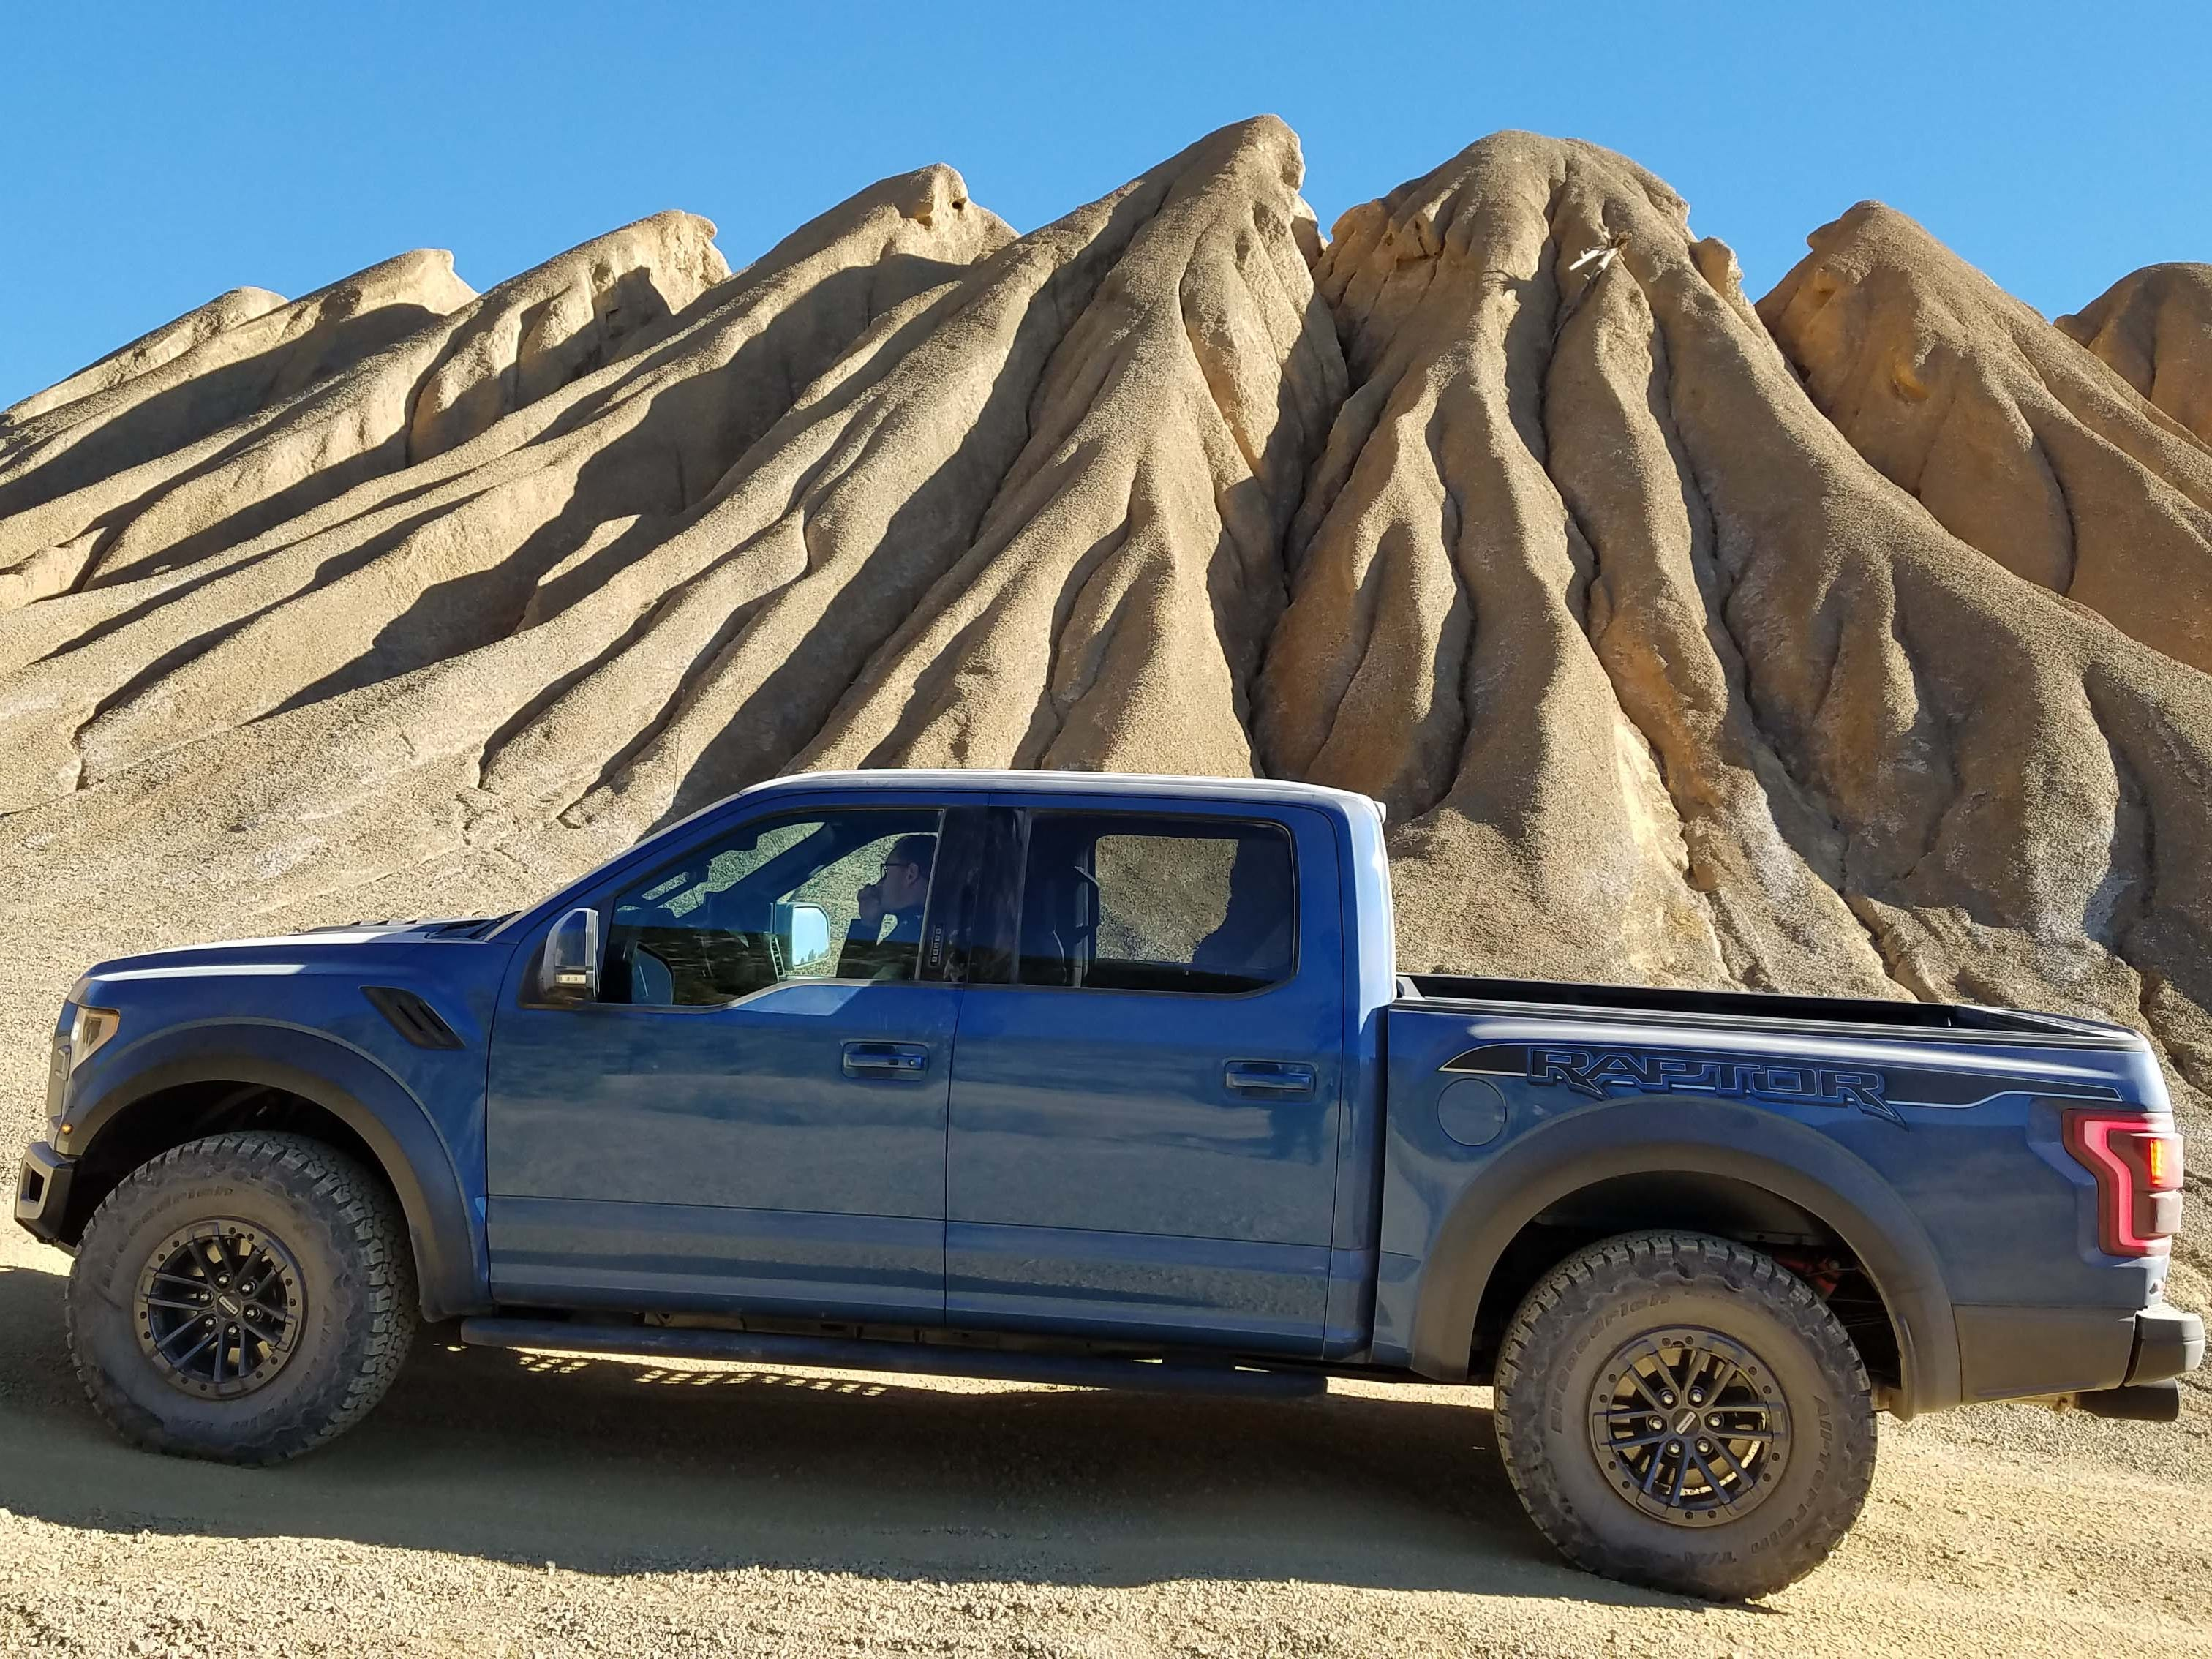 Let's go exploring. The 2019 Ford F-150 Raptor in its natural habitat — miles from anywhere.